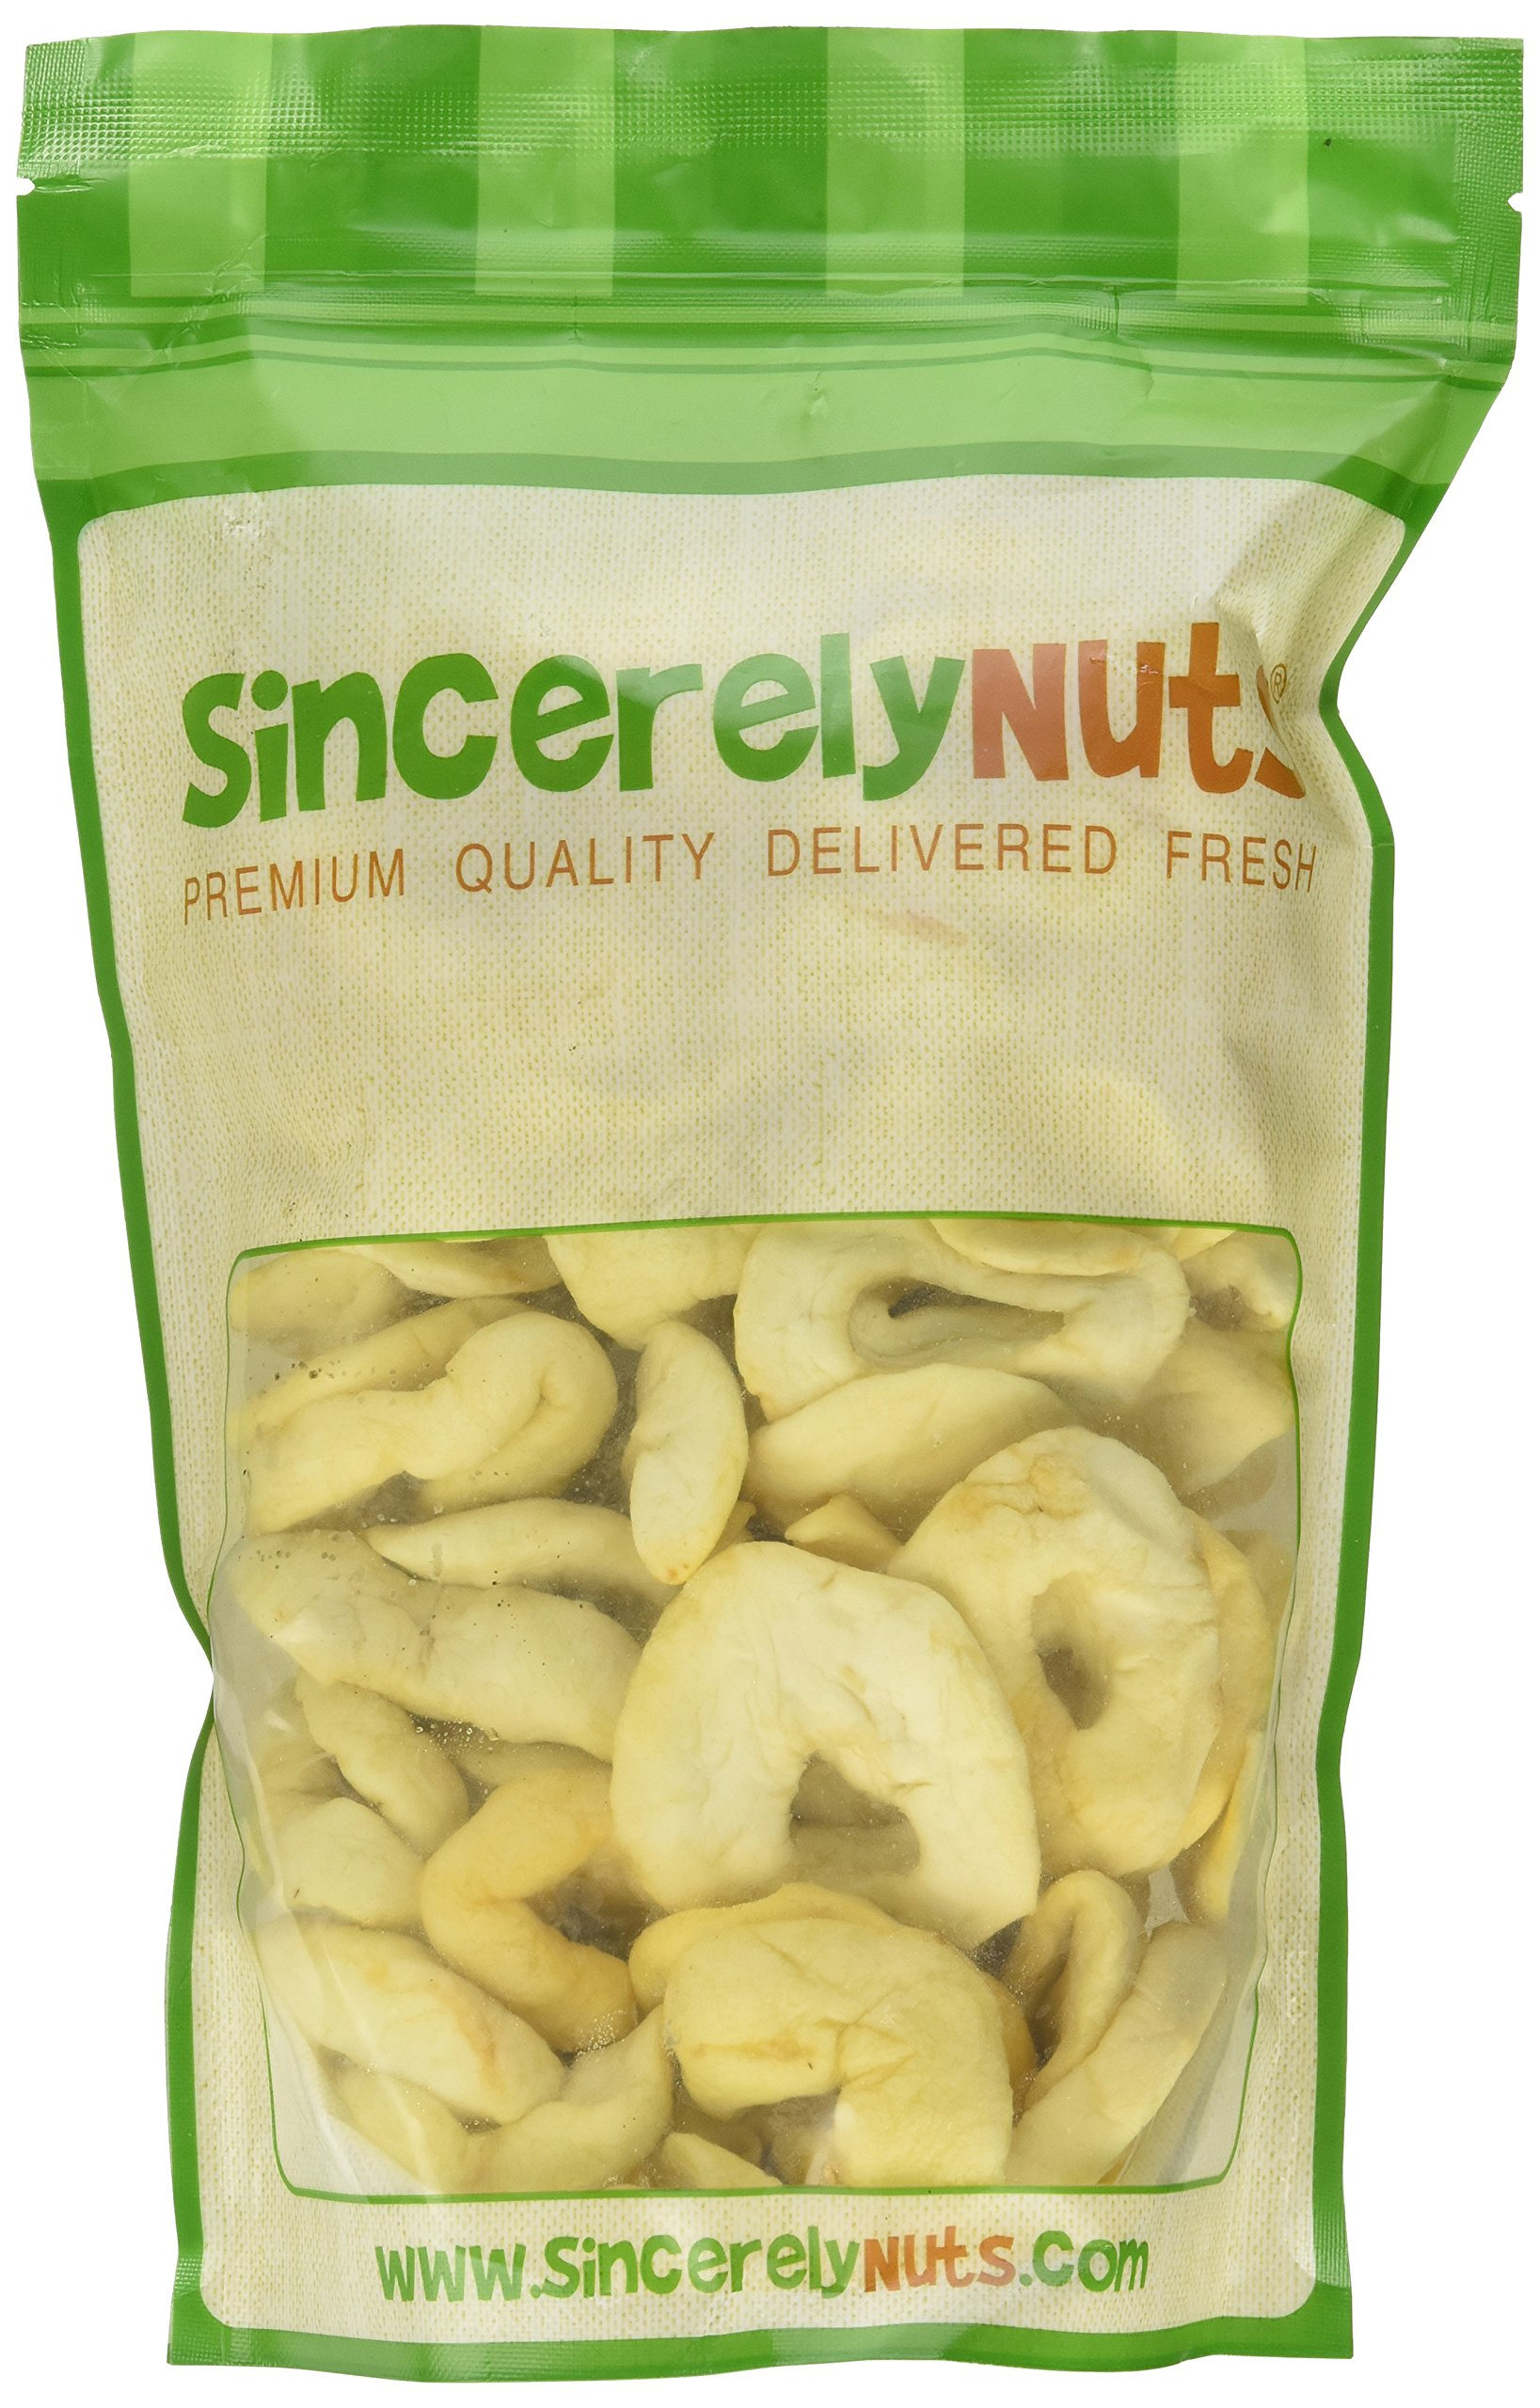 Dried Apples (1 Pound Bag) - No Sugar added by Superior Nut Company